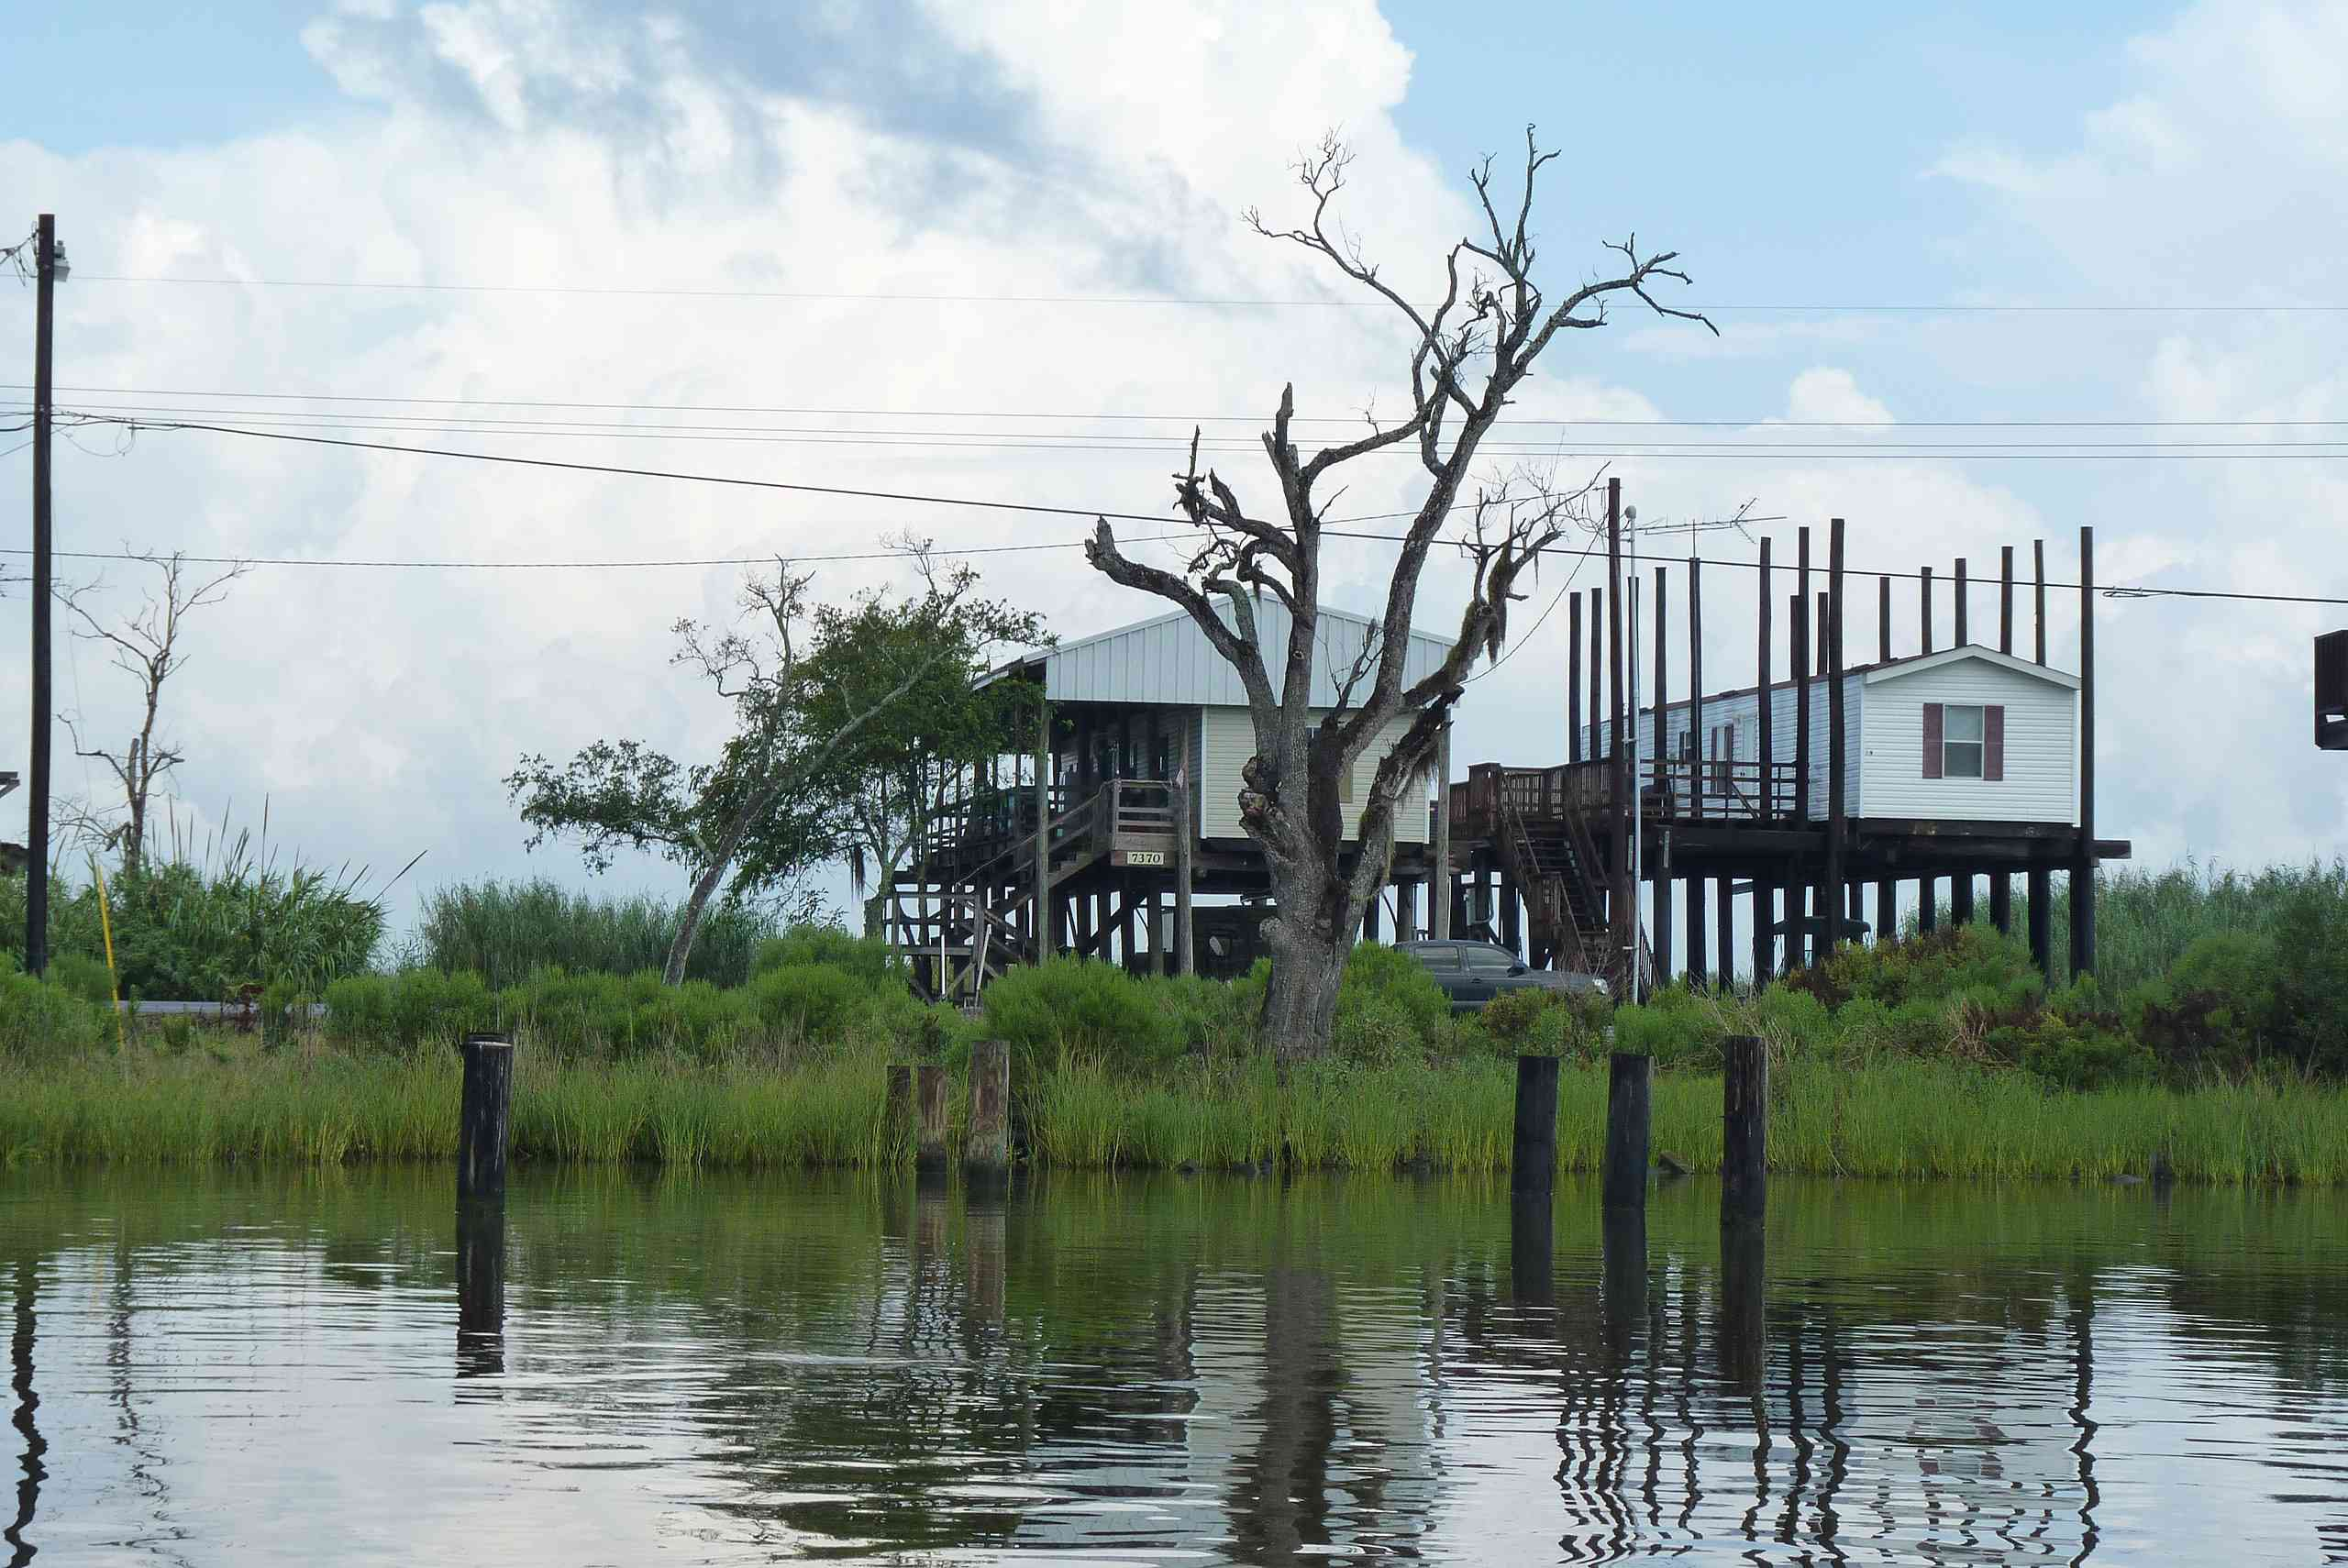 Lone ghost tree and houses on stilts next to water